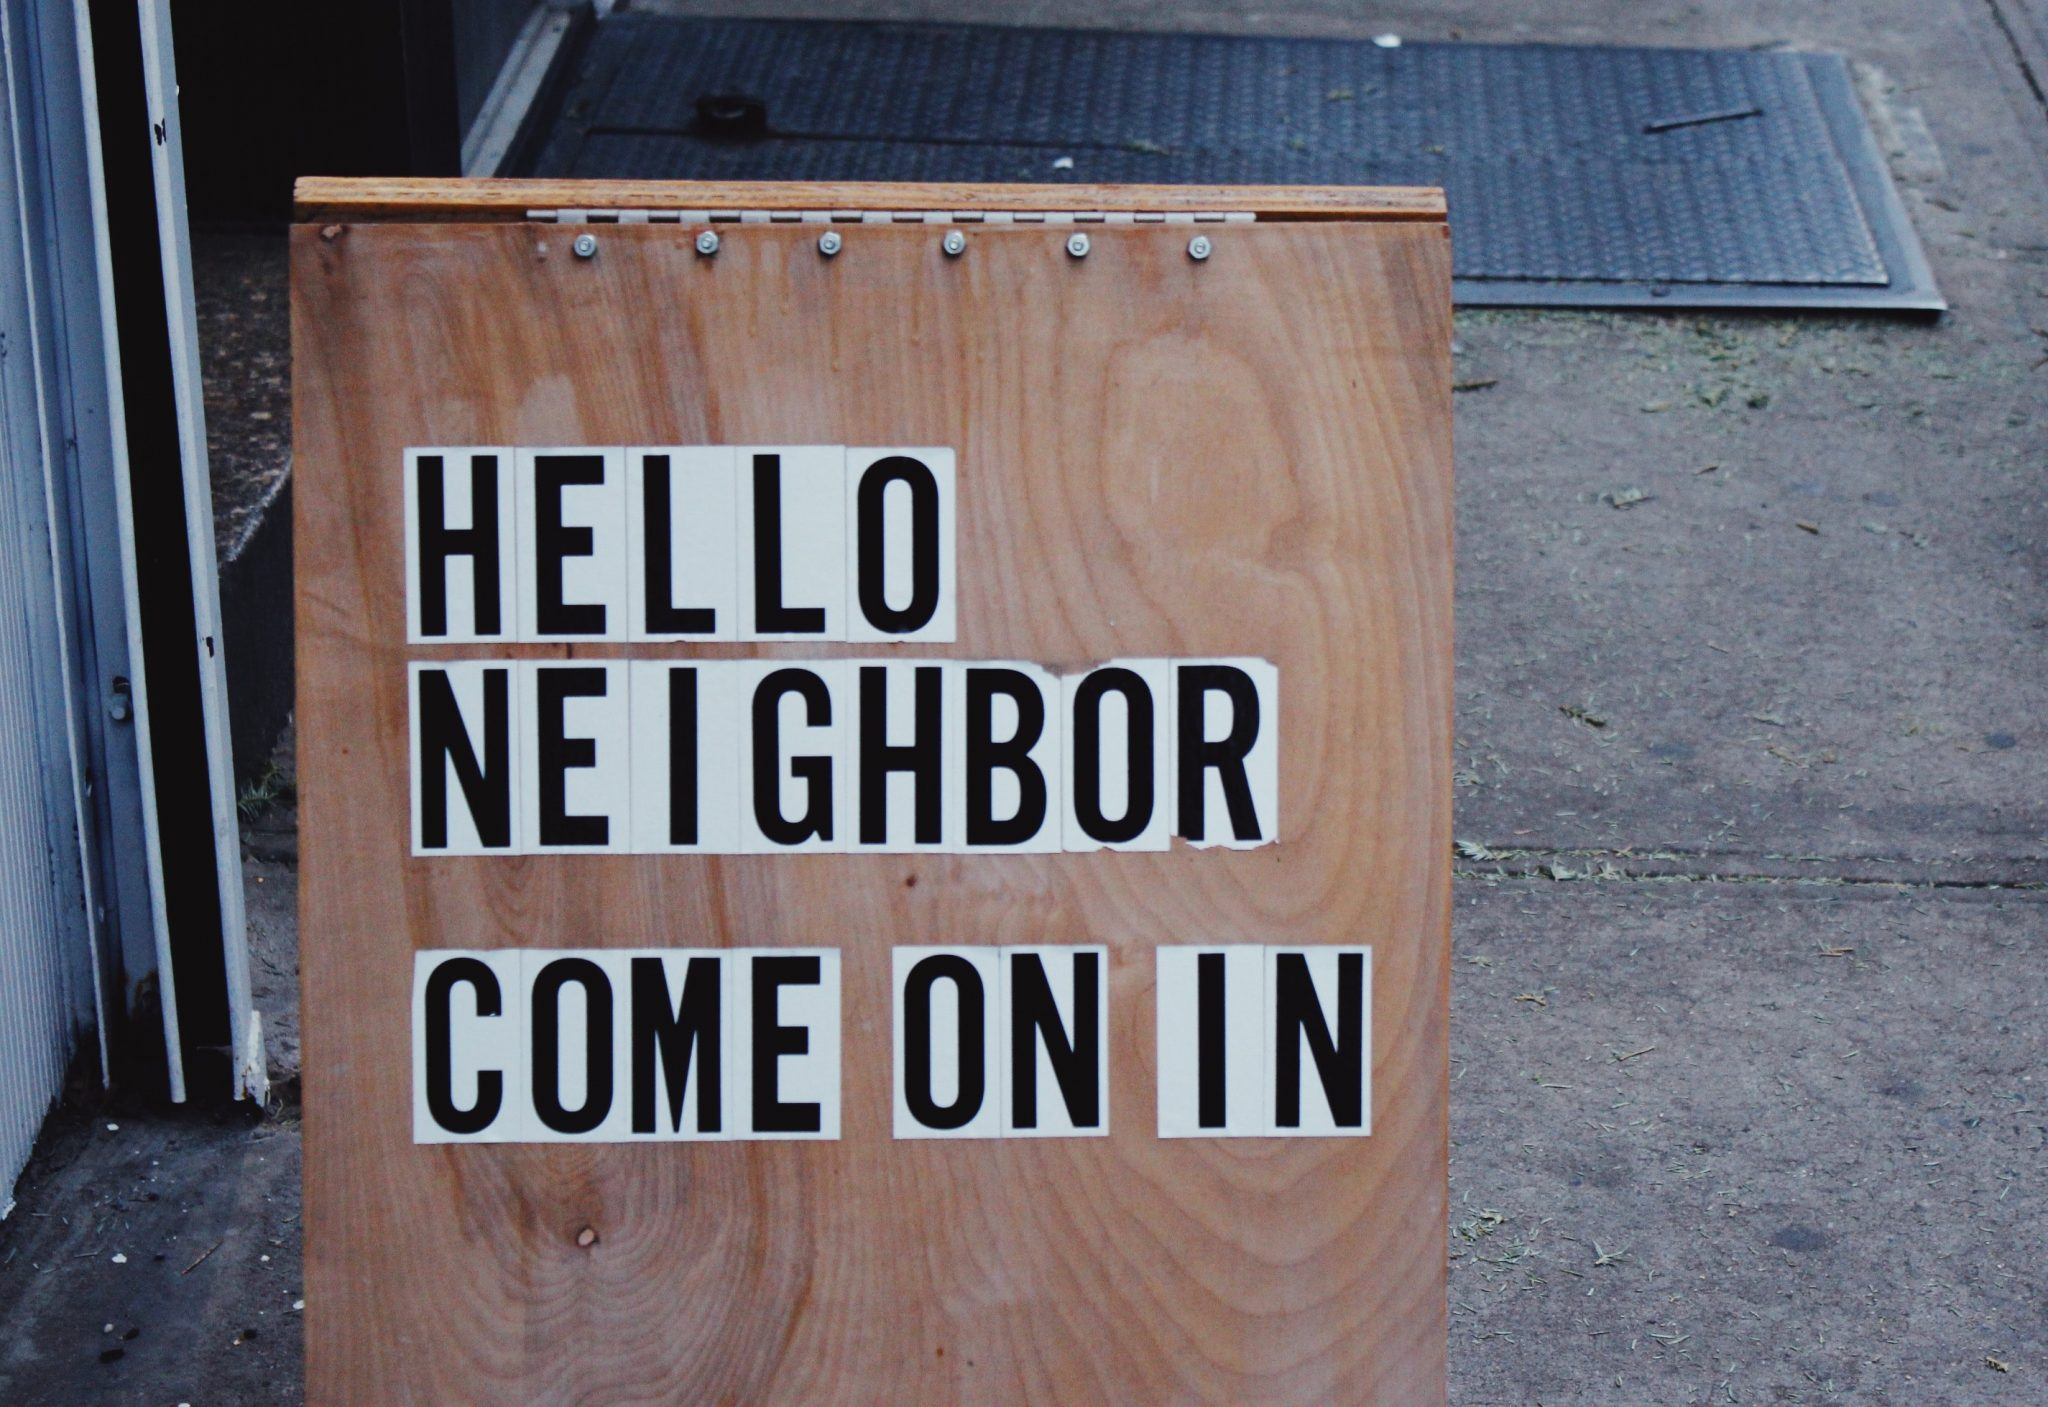 Being Christian, Being Neighborly